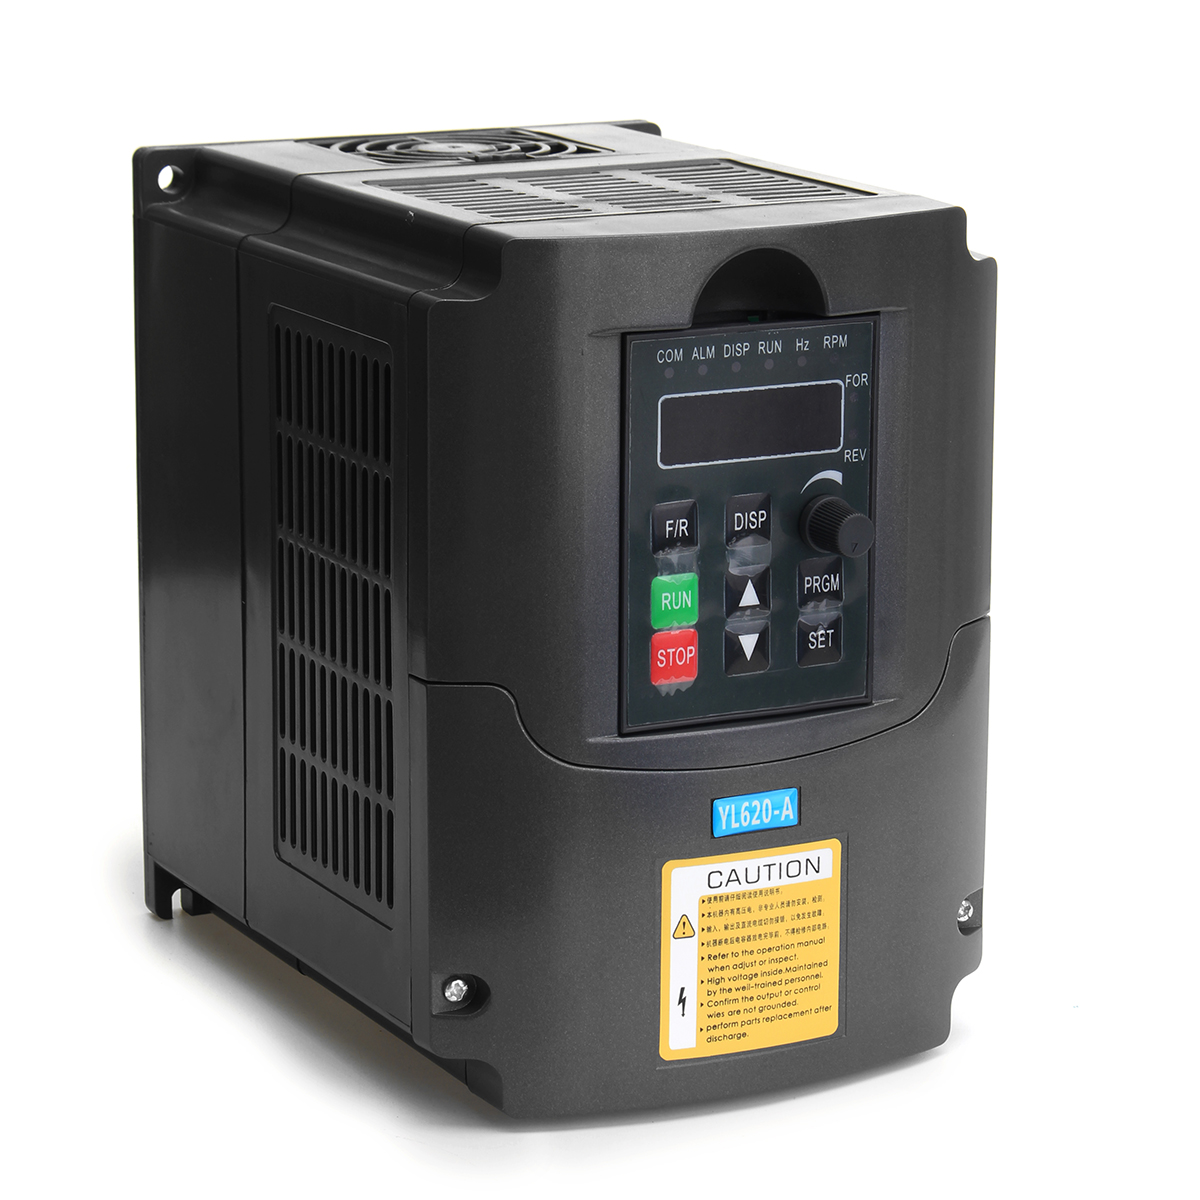 1.5kw 110V AC Variable Frequency Inverter Converter 3 Phase Output Built-in PLC Single Phase Space Voltage Vector Modulation 110v 2 2kw ac variable frequency inverter converter 3 phase output single phase input space voltage vector modulation